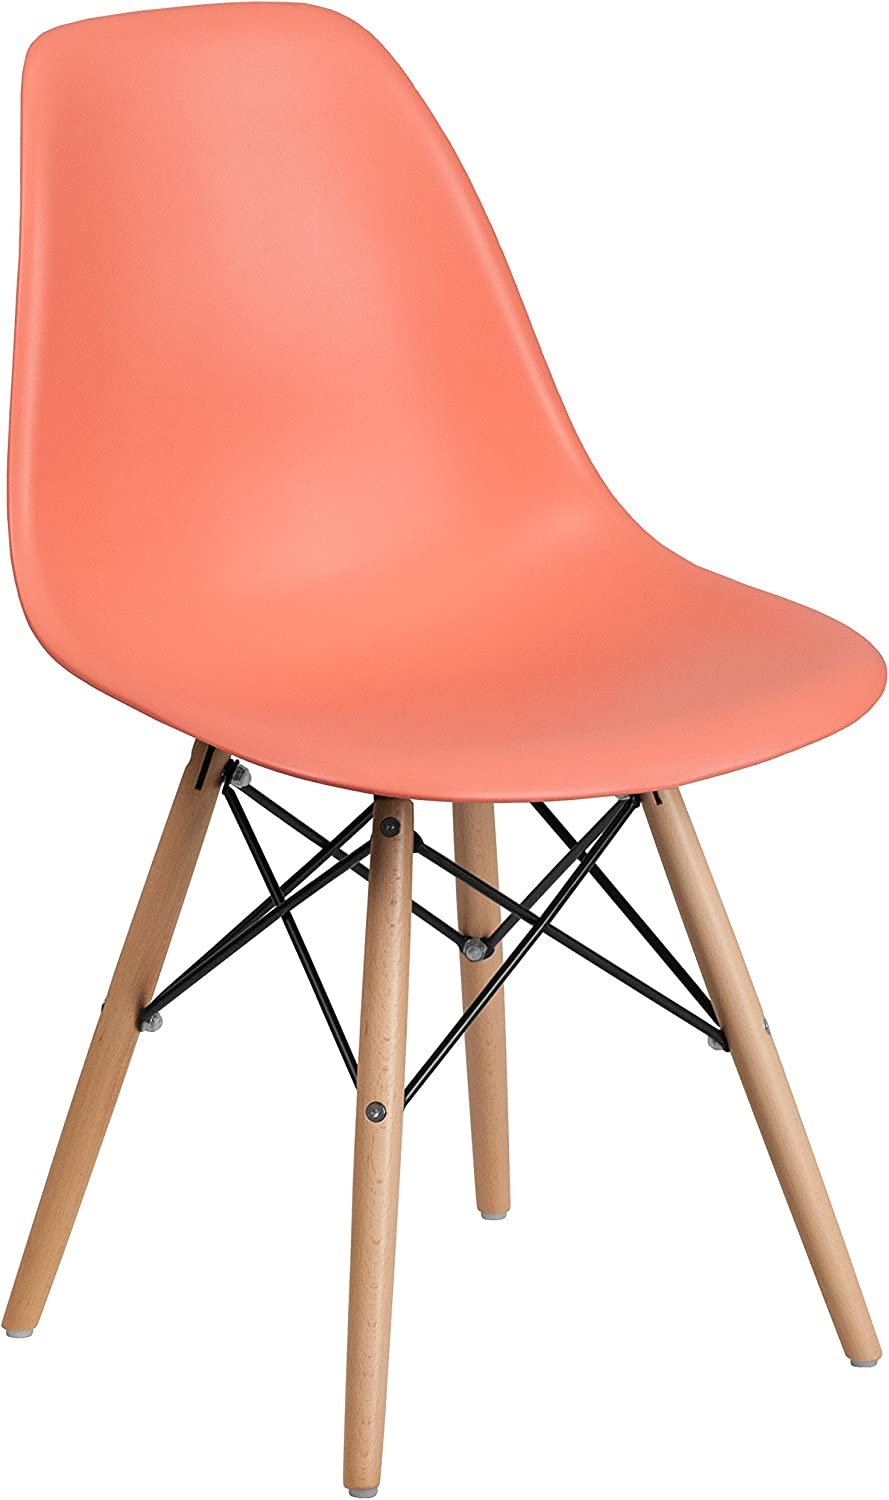 Flash Furniture Elon Series Peach Plastic Chair with Wooden Legs